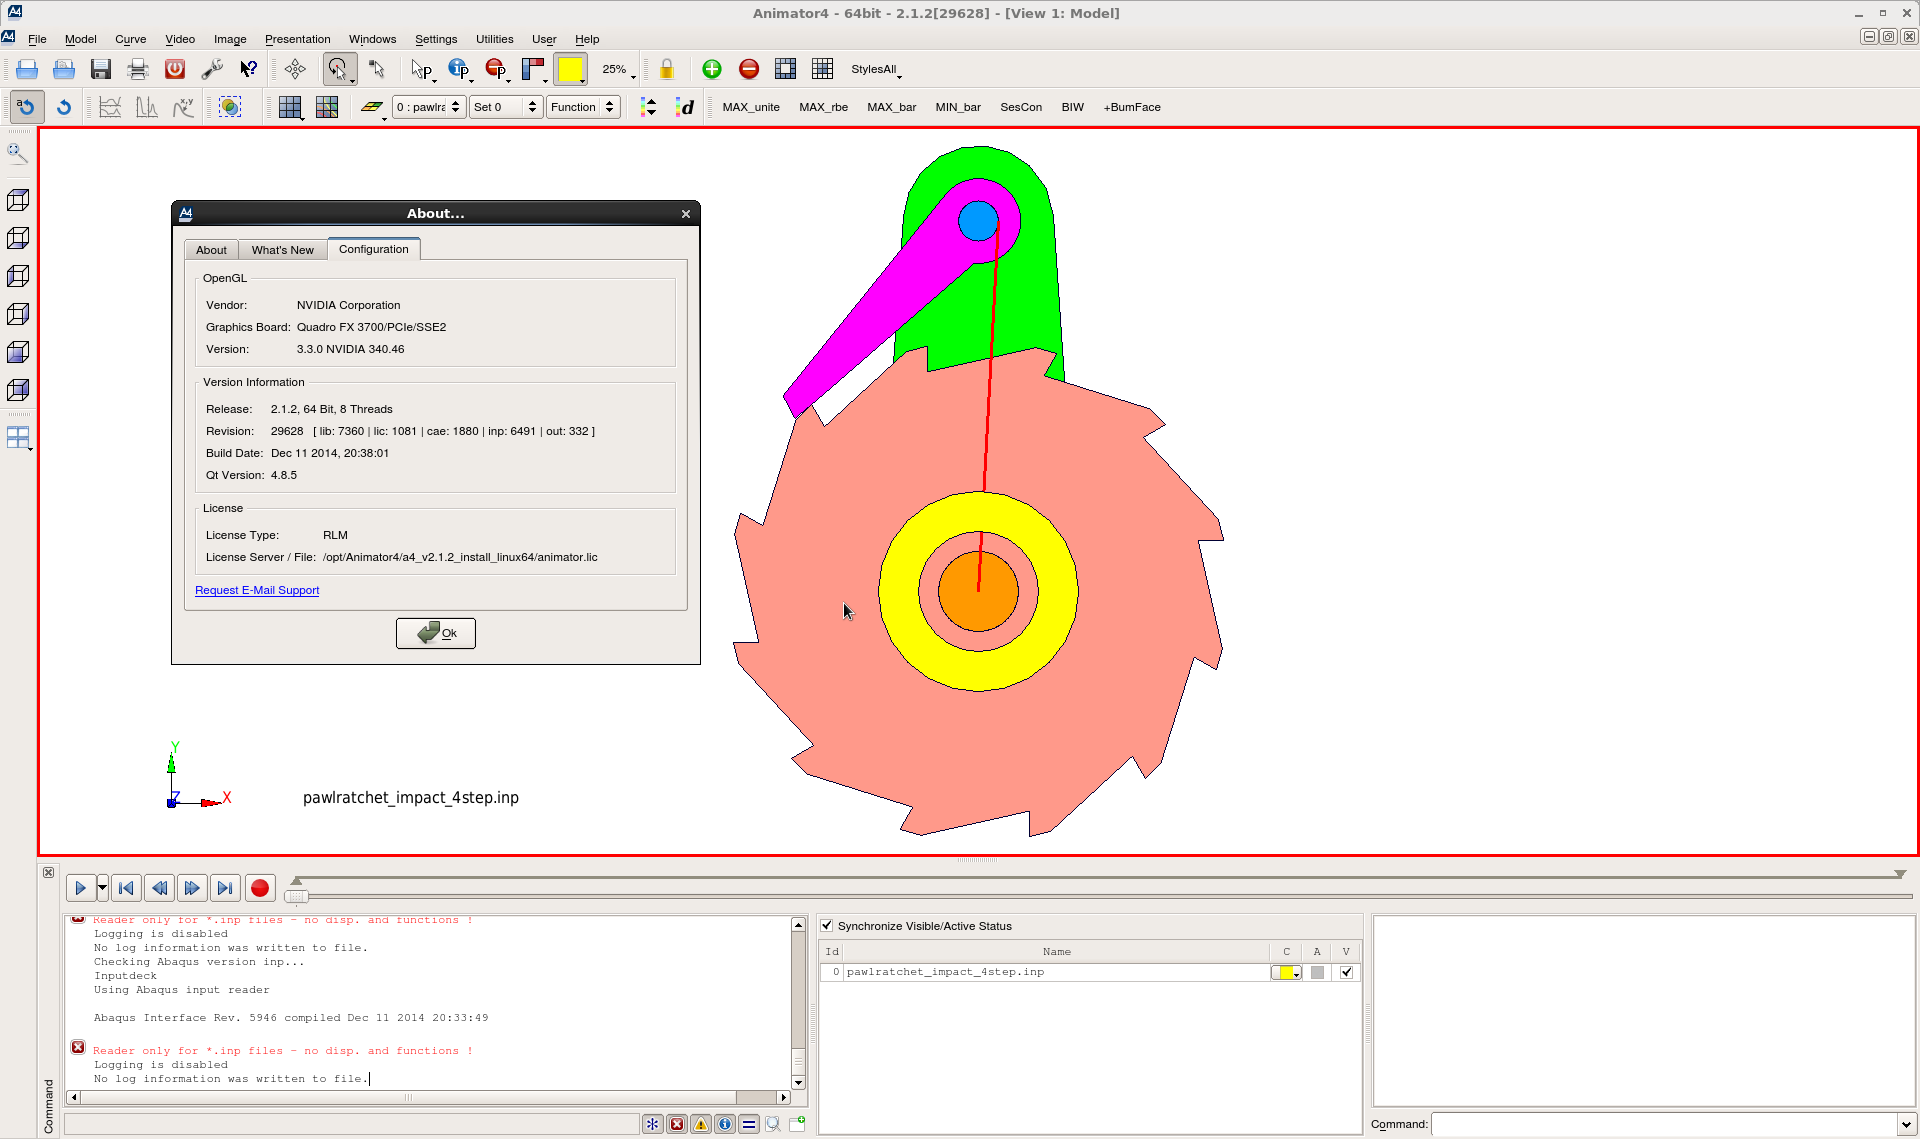 Working with GNS Animator4 v2.1.2 full license